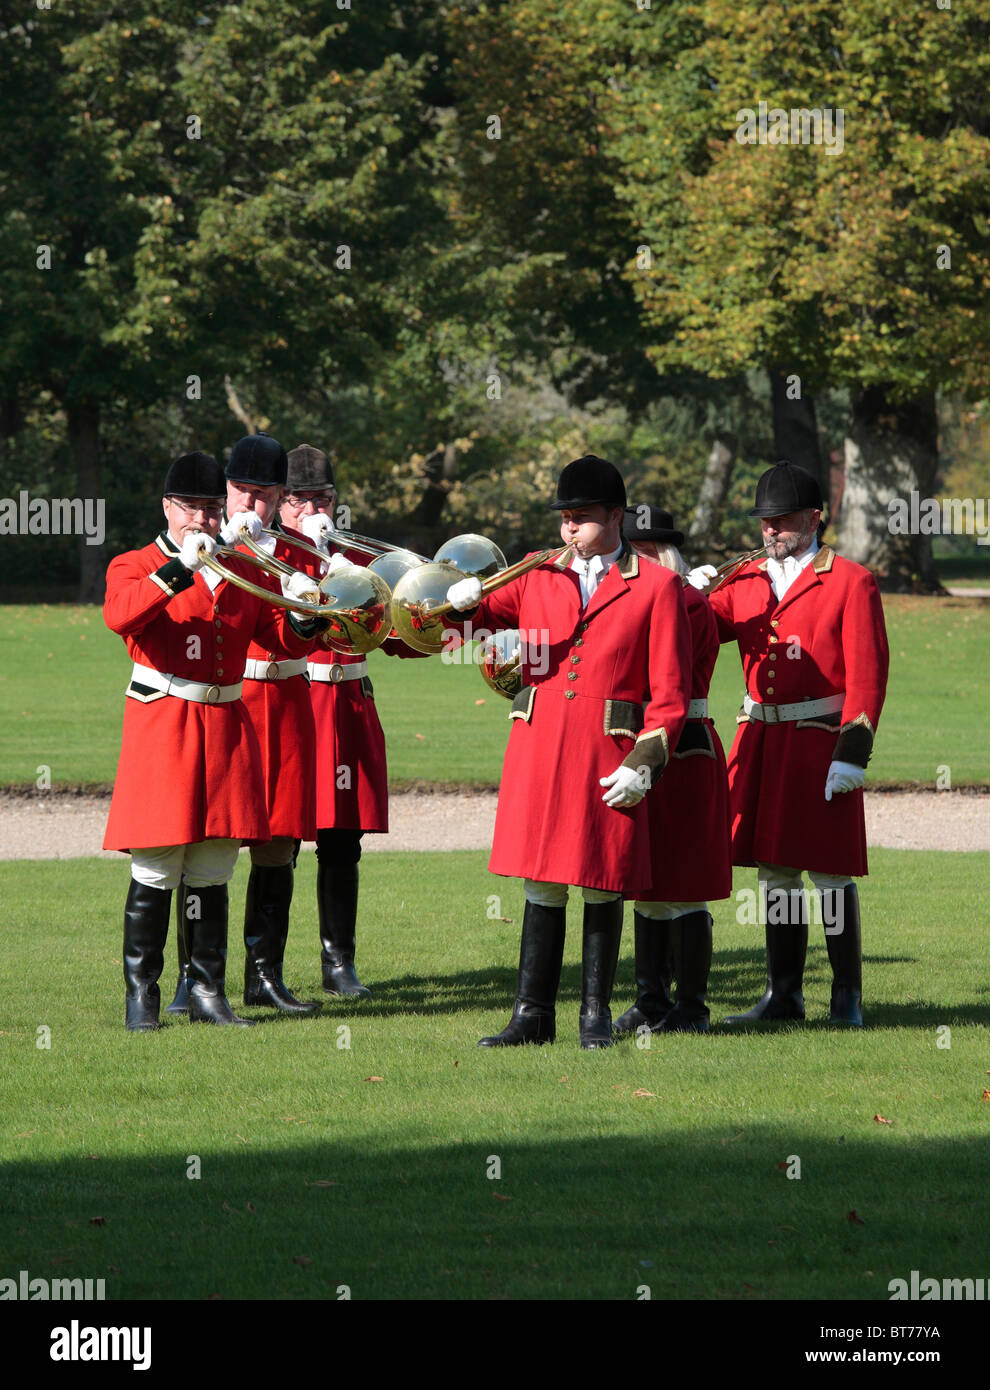 Huntsmen in Red Coats, blowing horns at Chateau de Cheverny in the Loire Valley, France - Stock Image